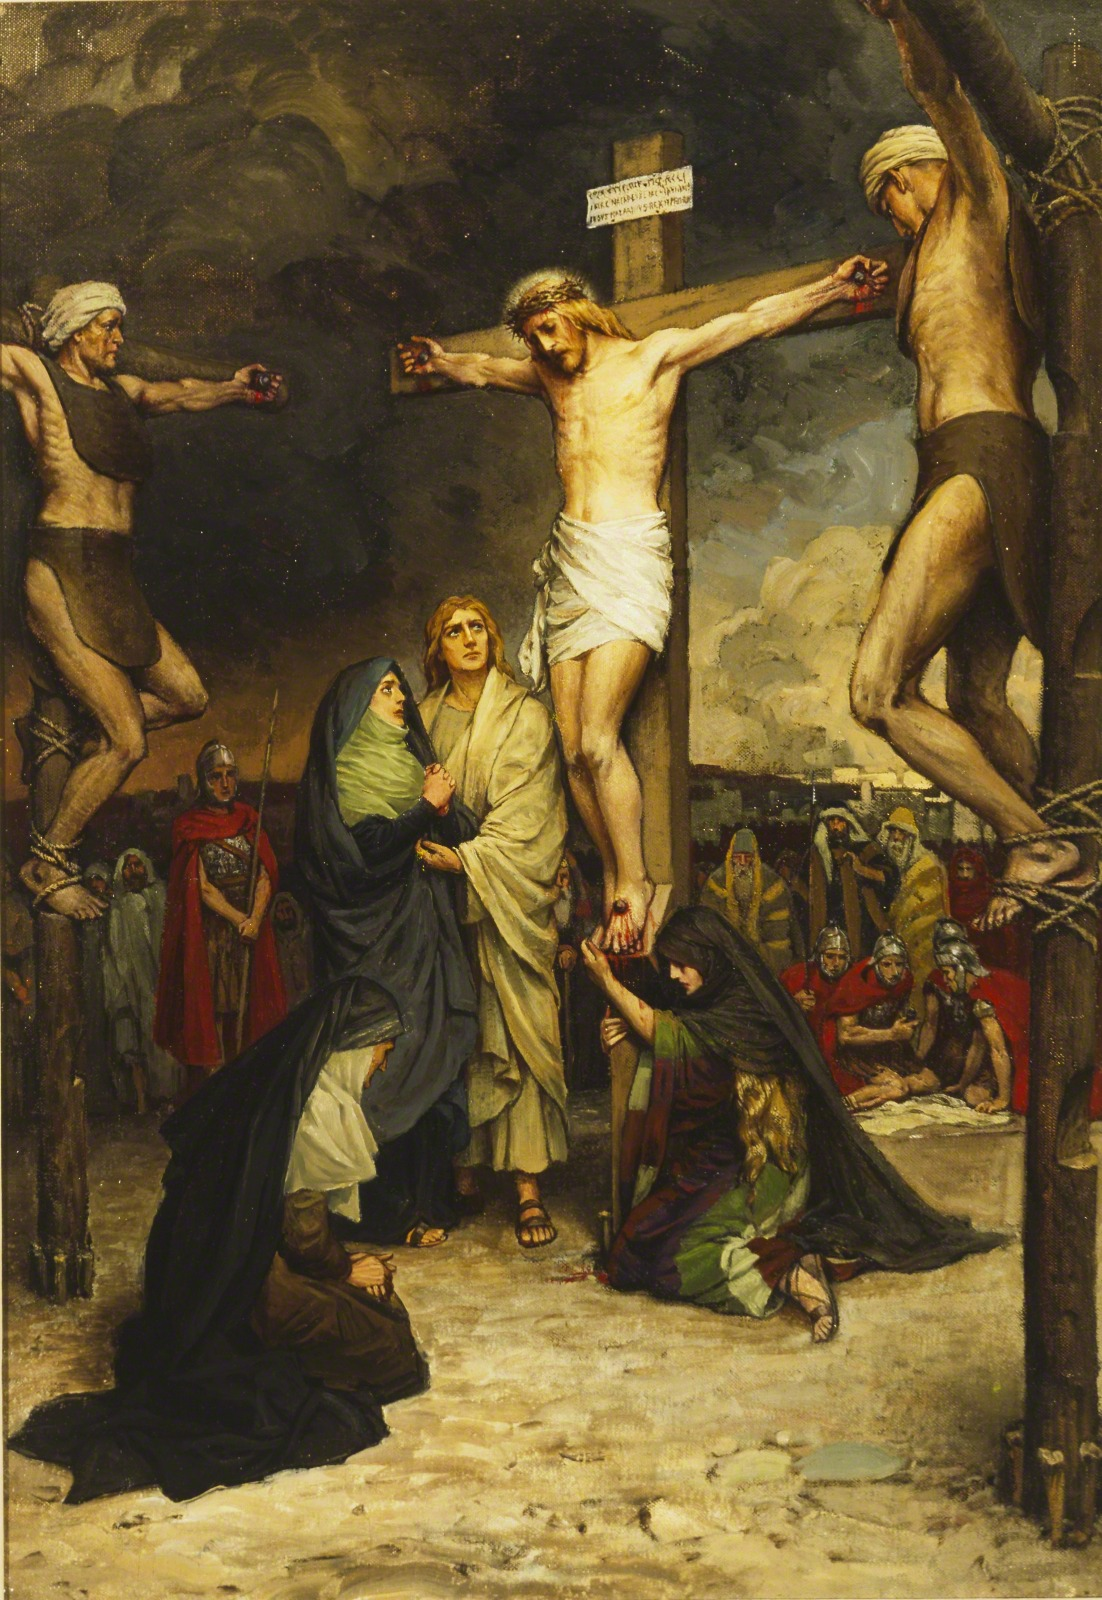 The Crucified Lovers: The Crucifixion Of Christ